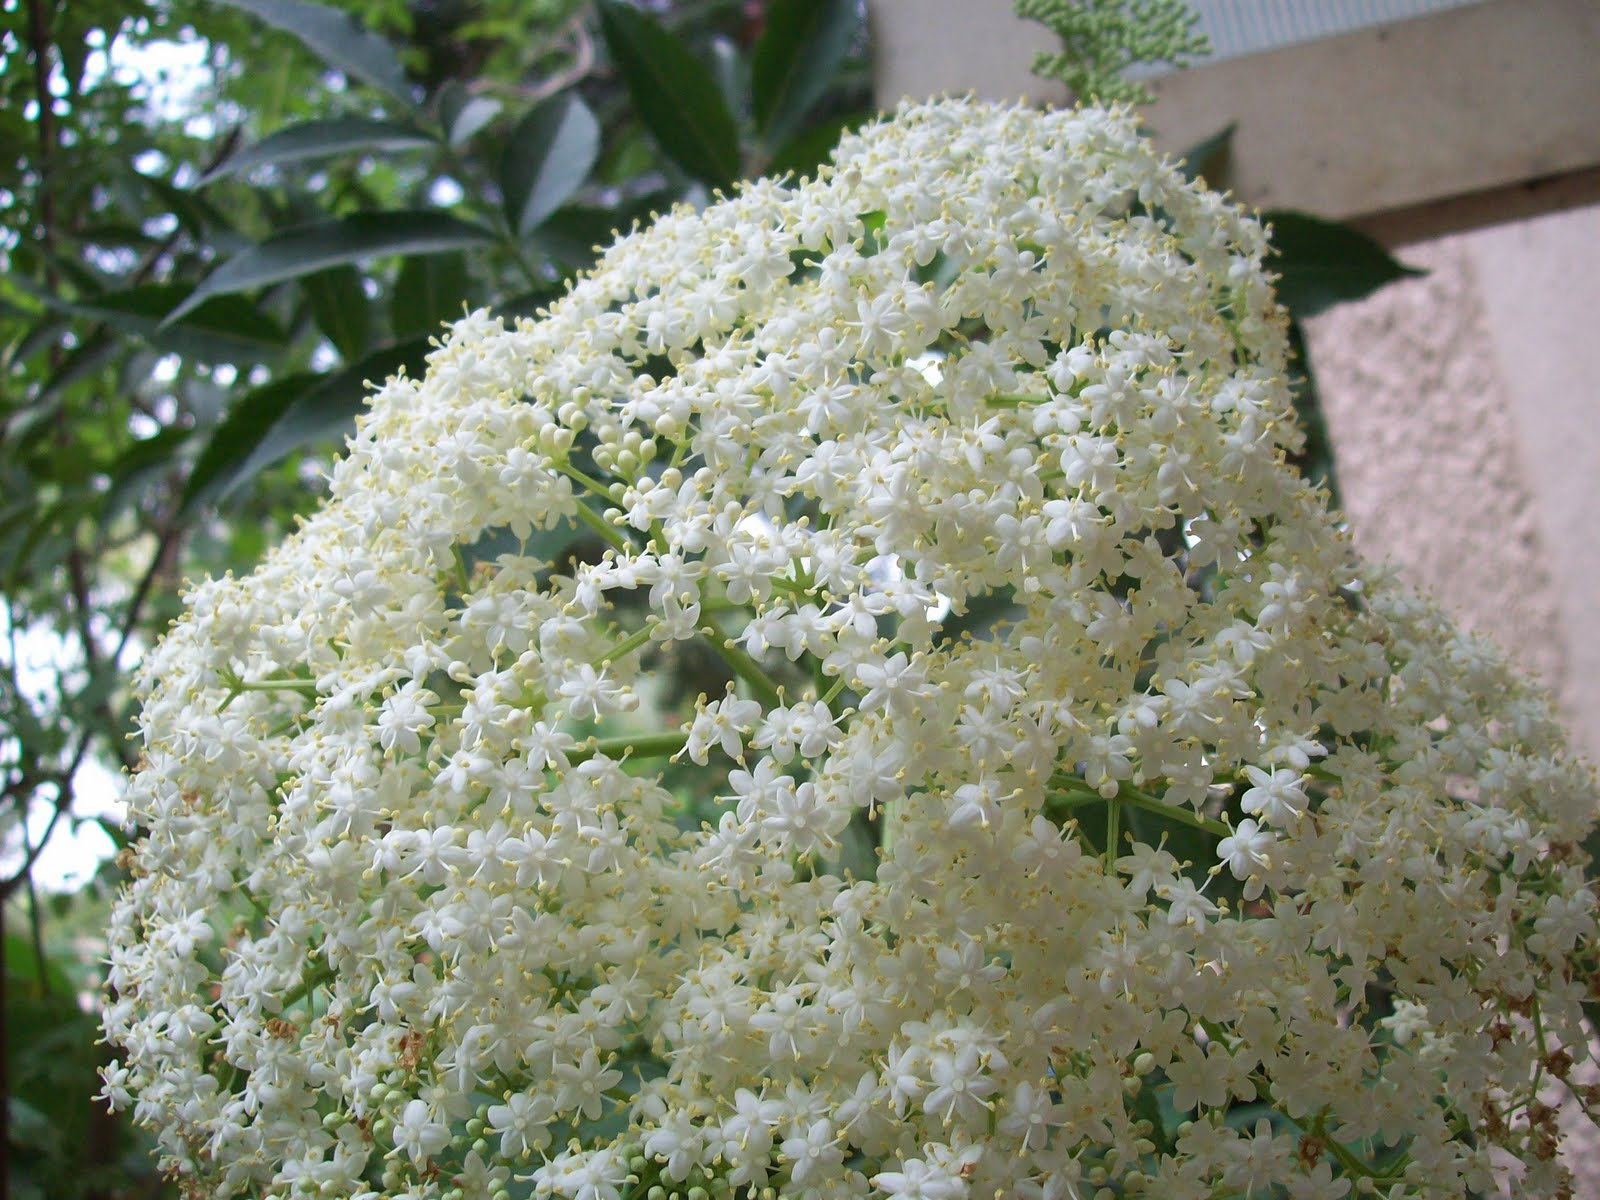 Gardentropics todays flowers the elderberry bush is full of these huge clusters of tiny white flowers the inflorescence seems to be a favourite place for small spiders and mantids mightylinksfo